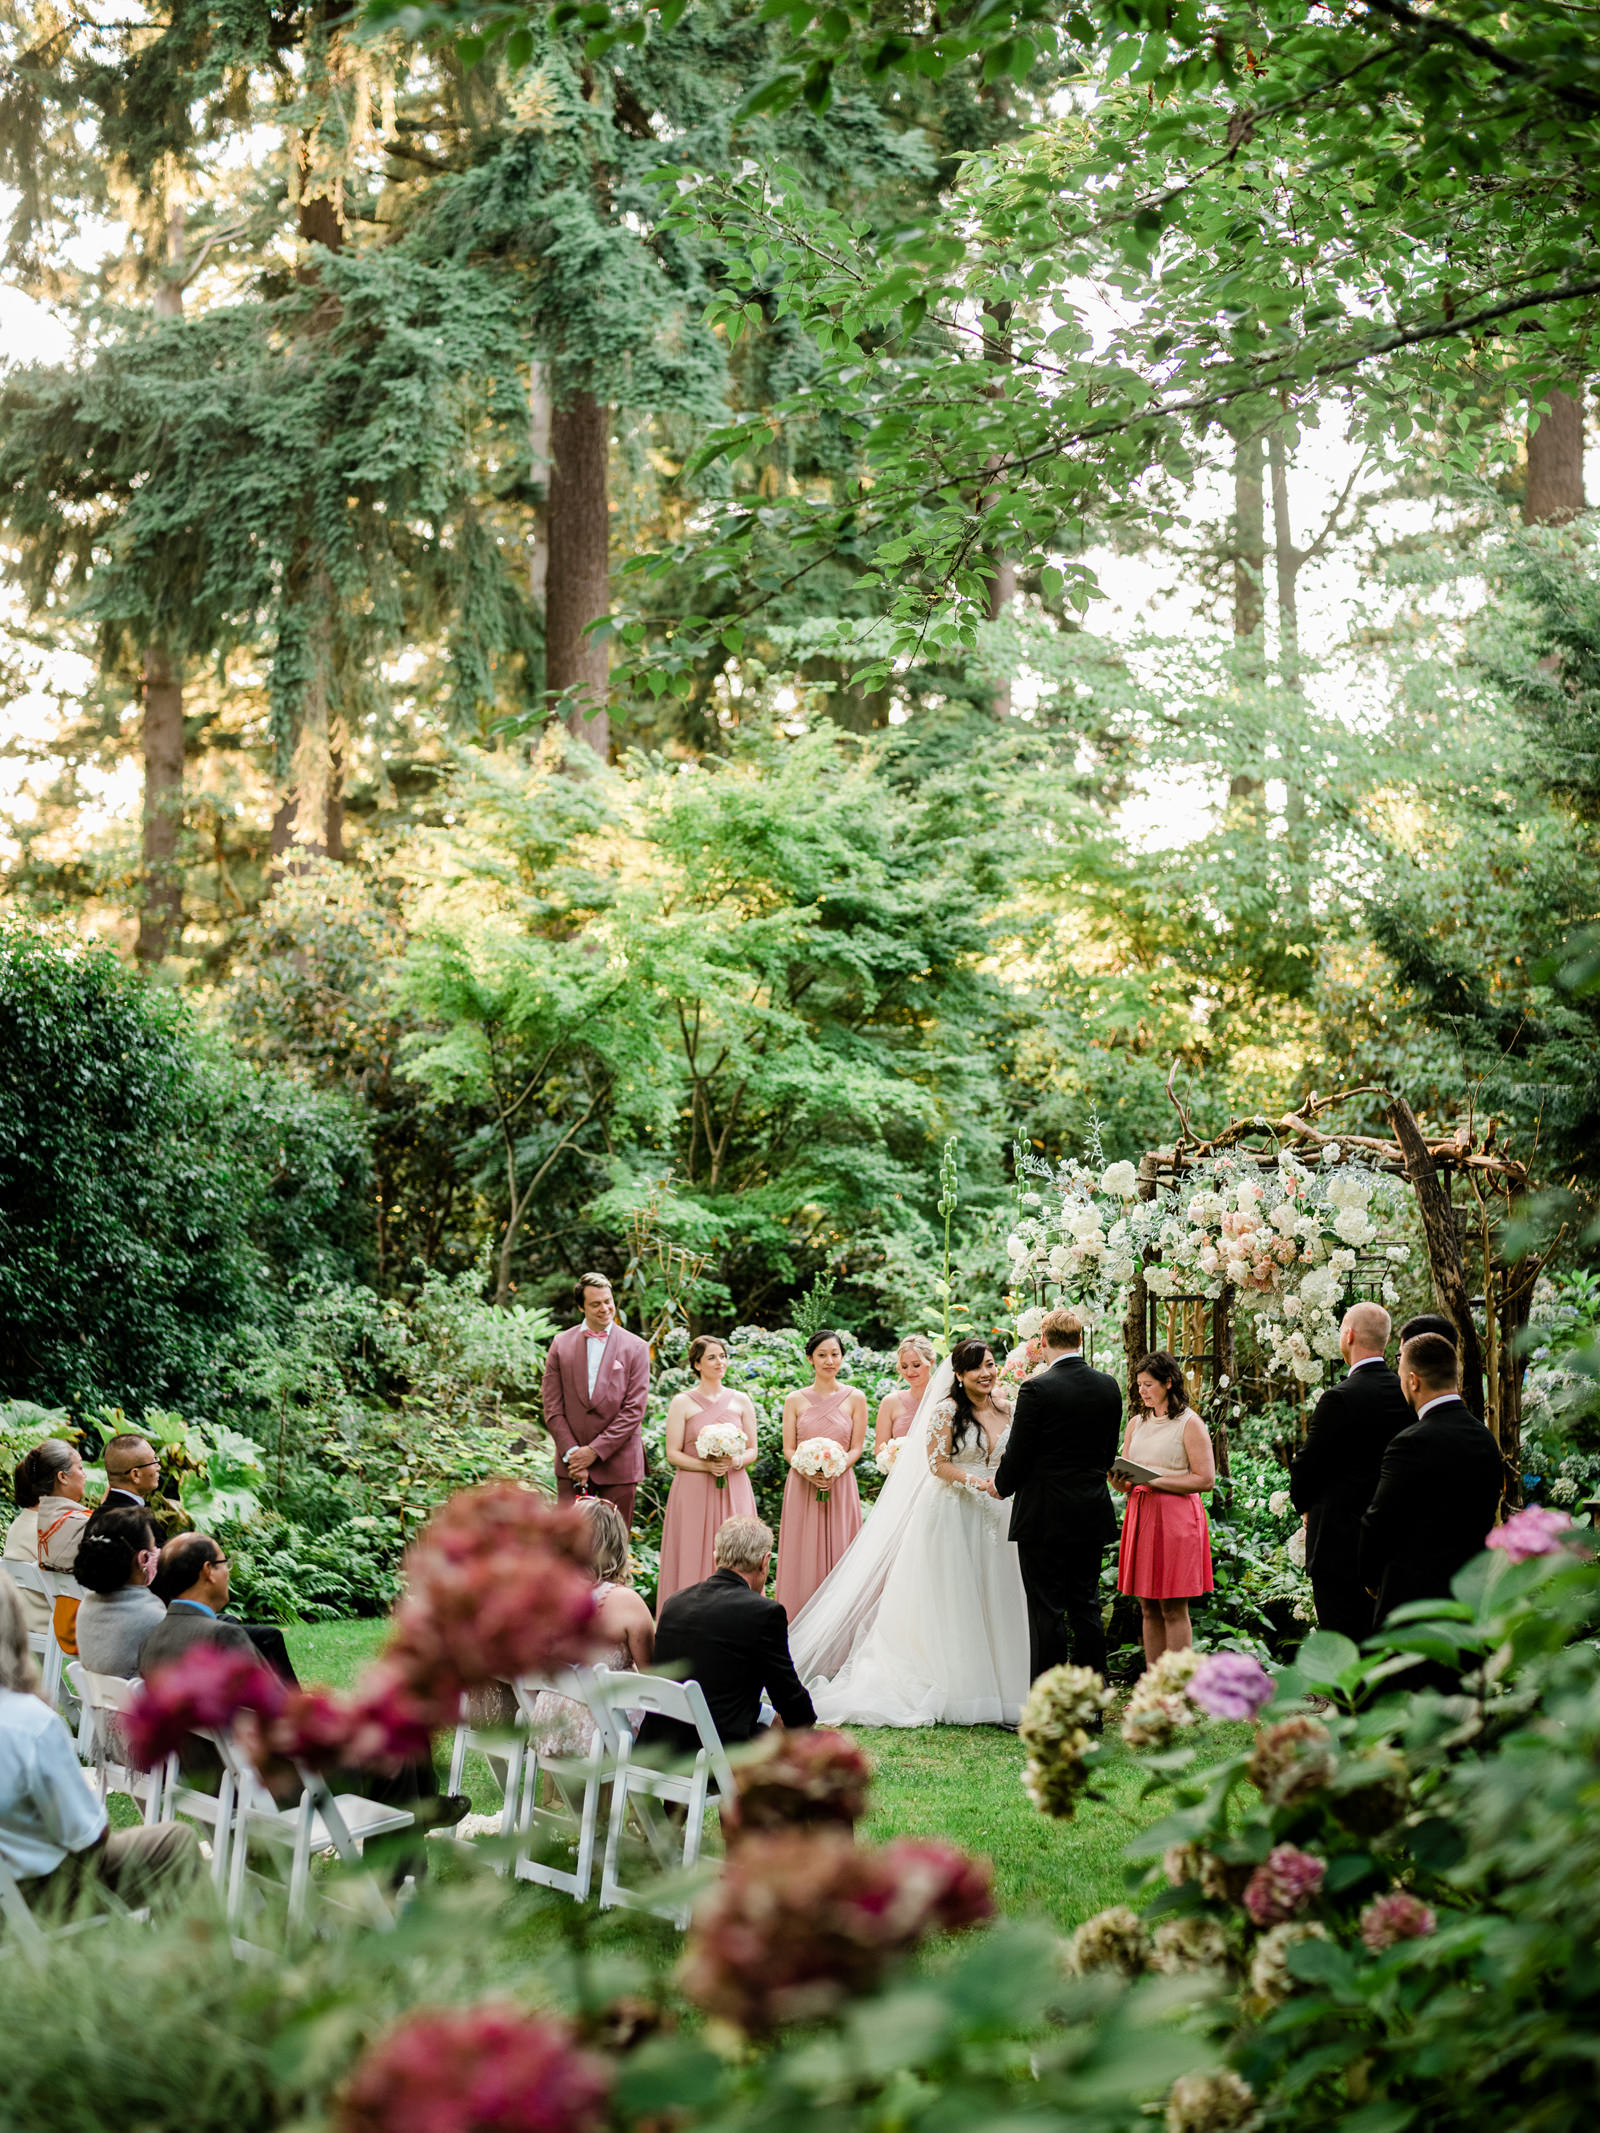 Ceremony in lush garden with bridal party - photo by Into Dust Photography